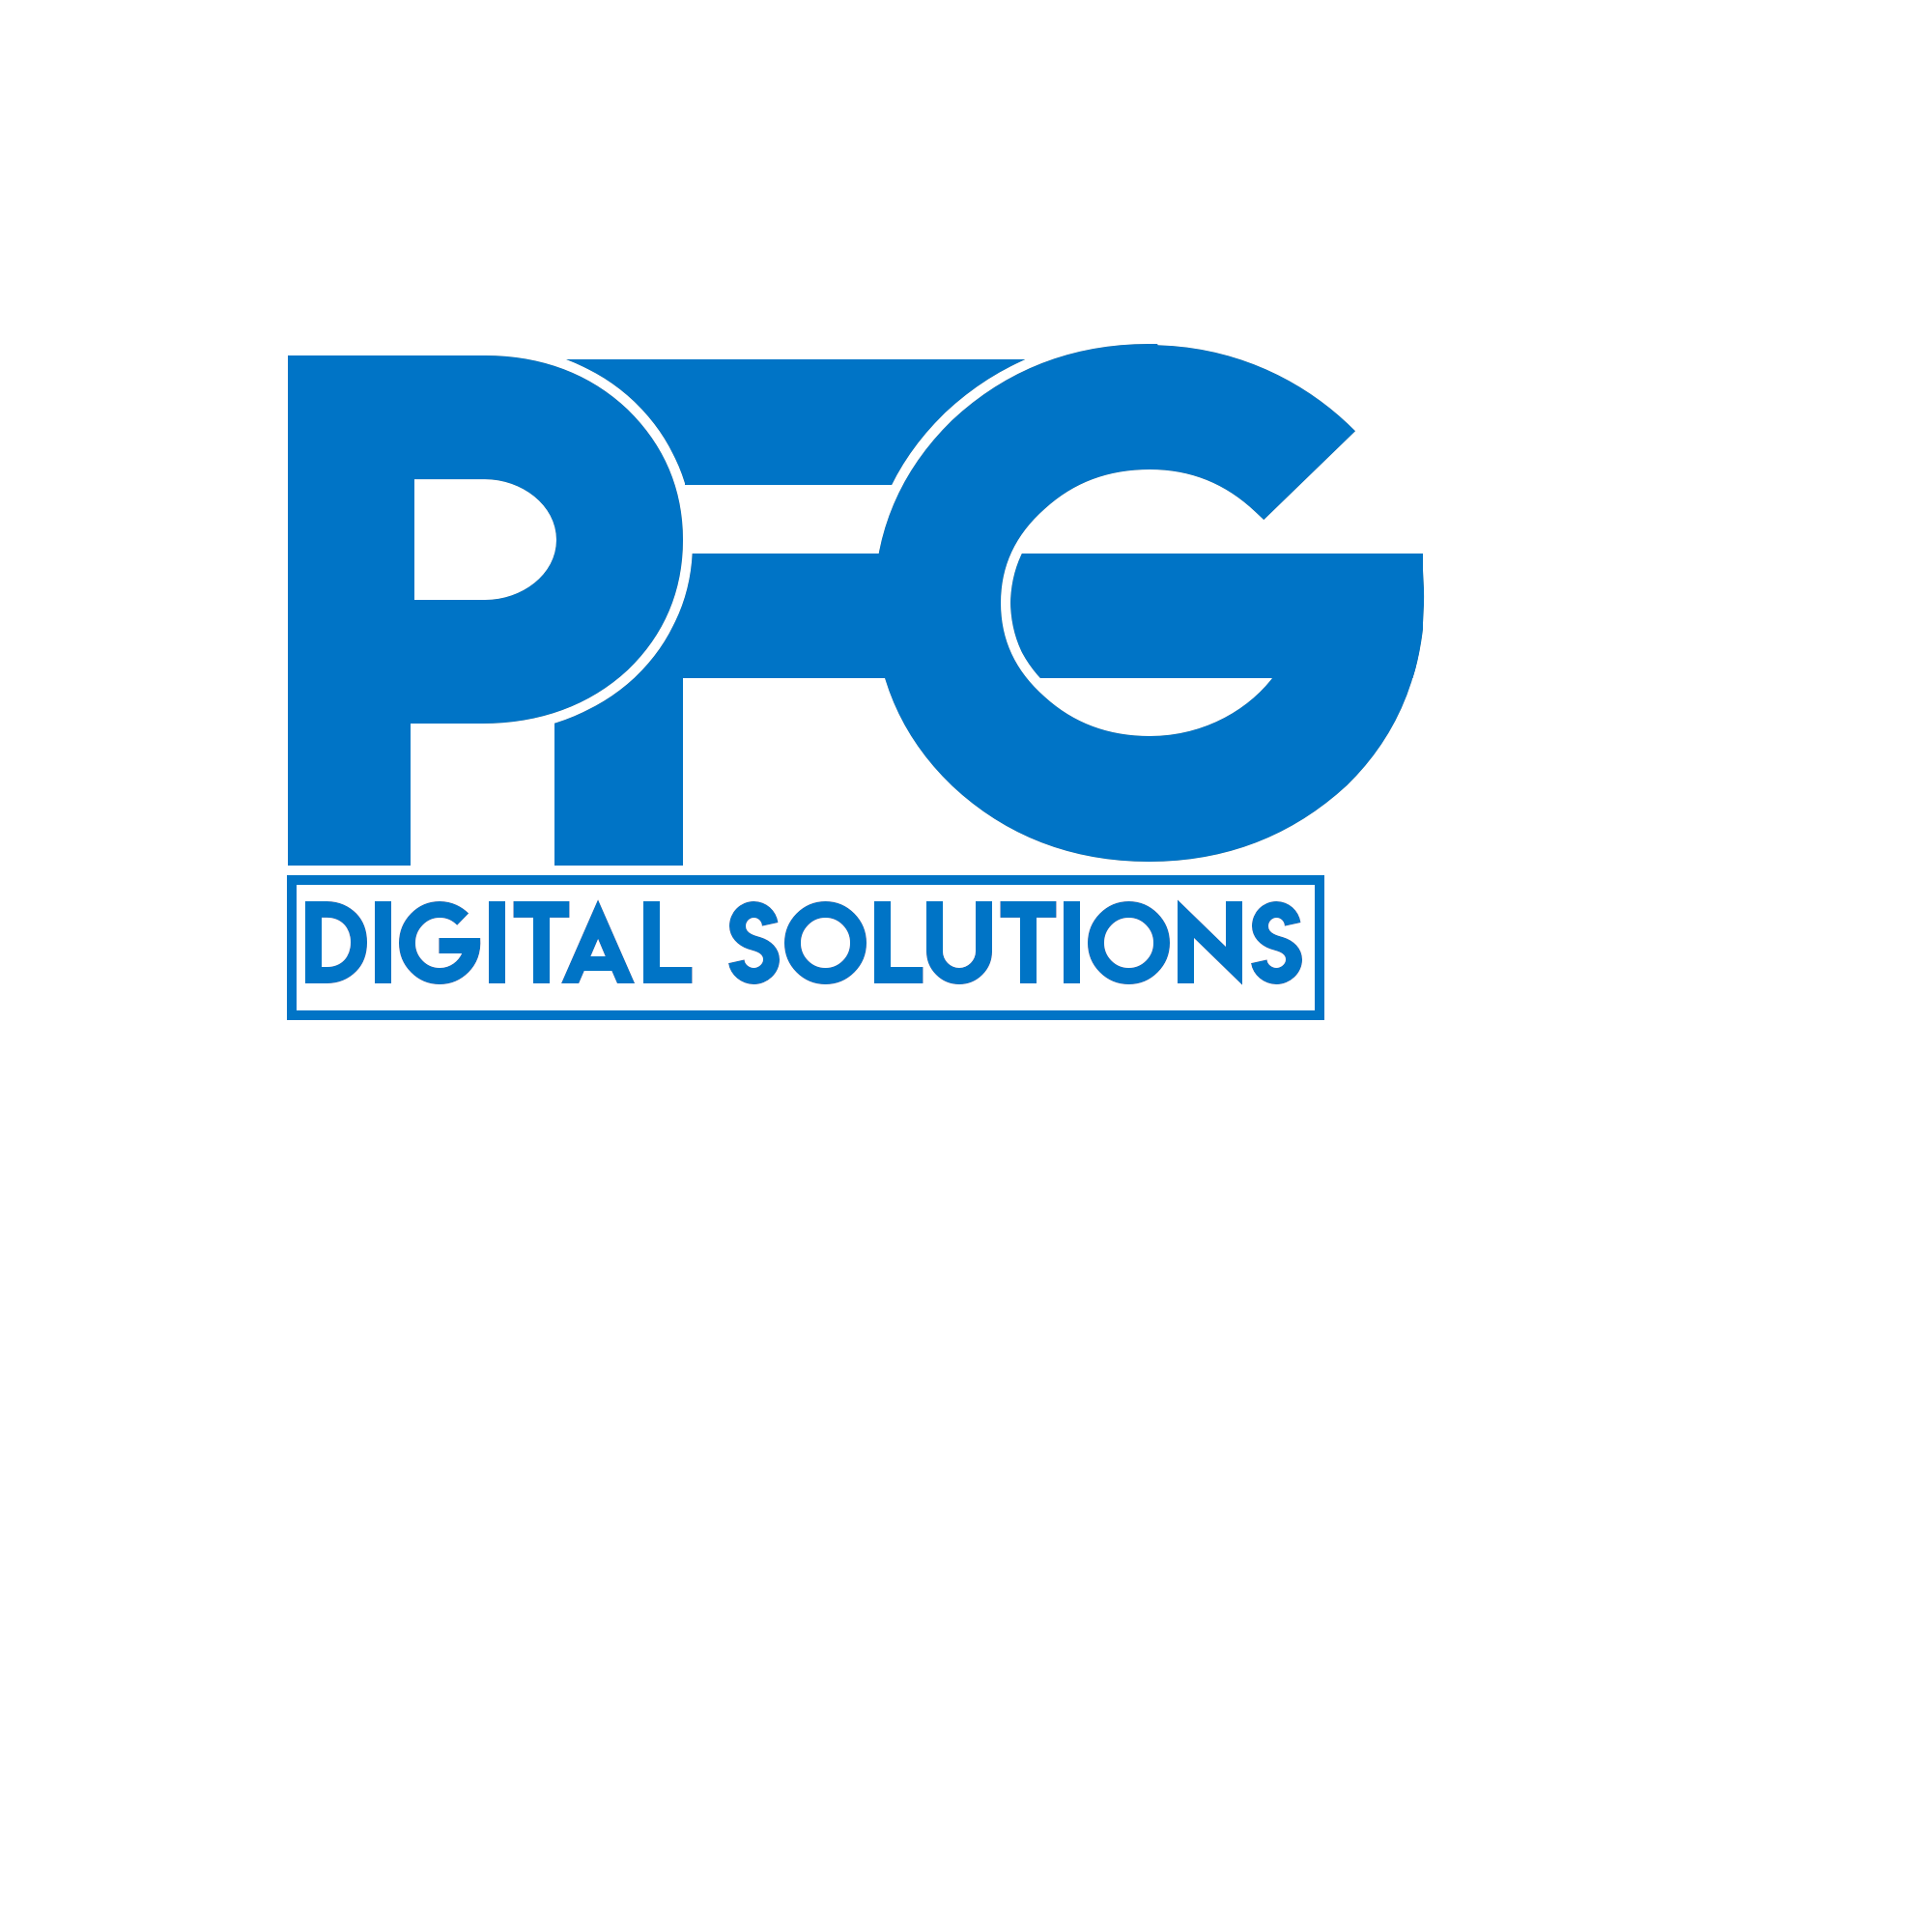 PFG Digital Solutions